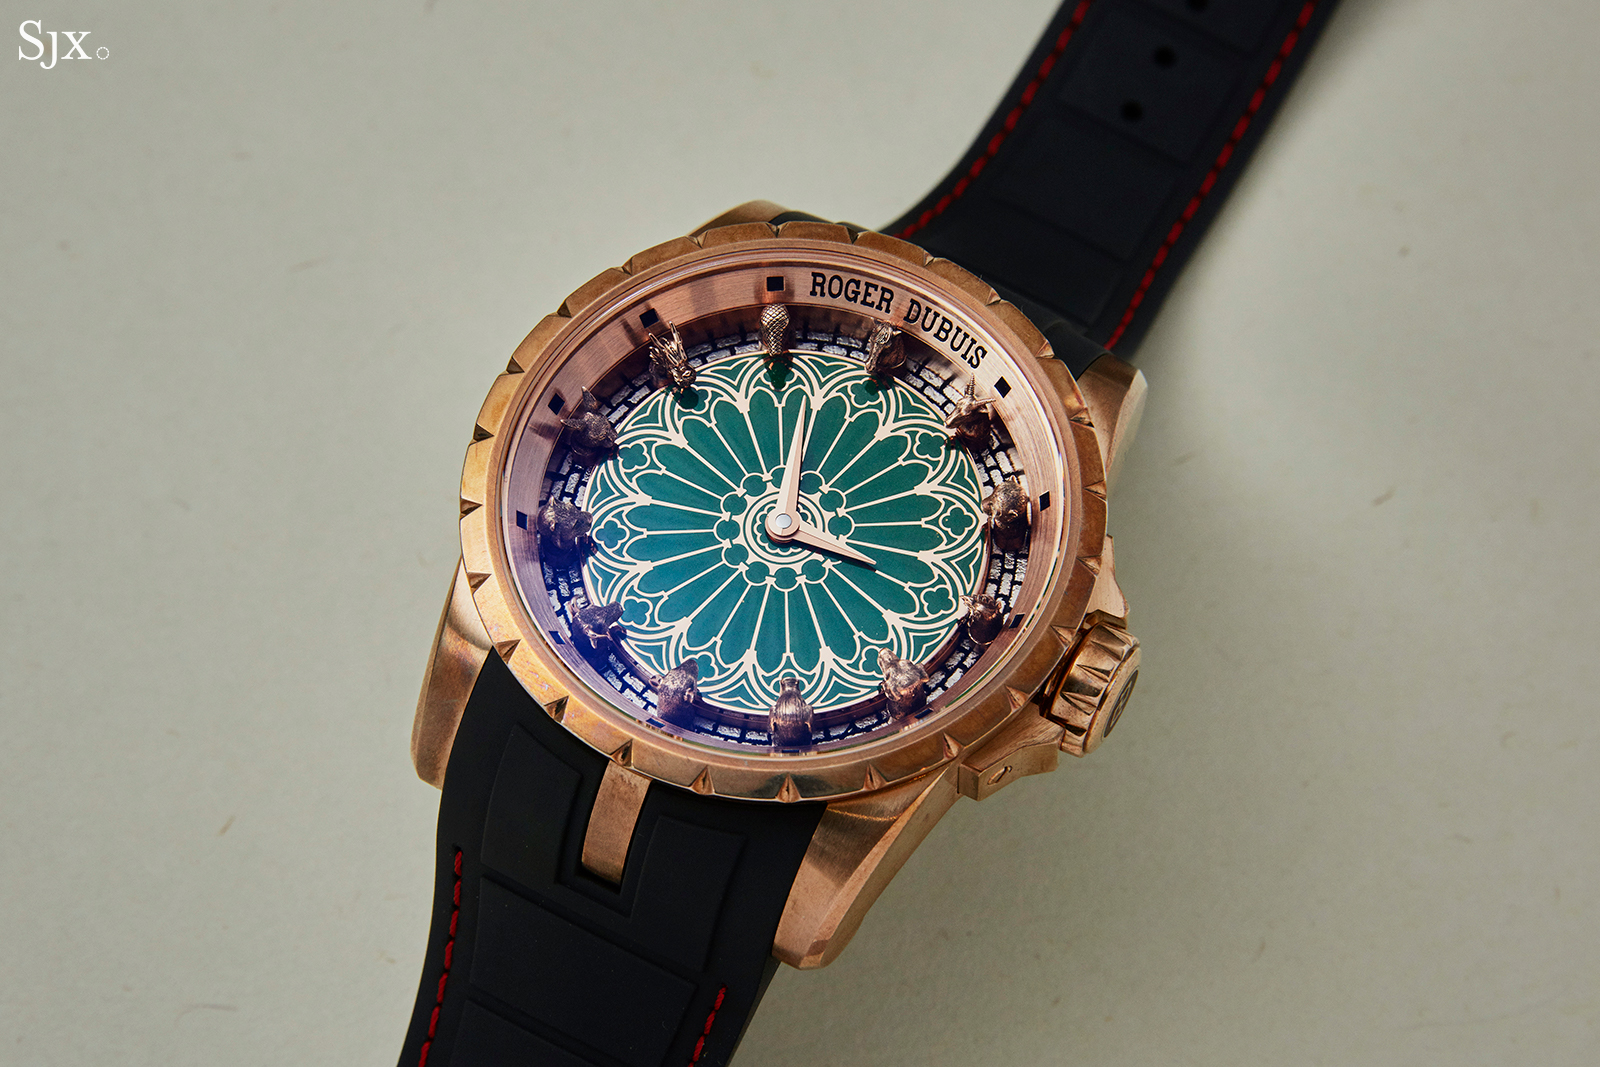 Roger Dubuis Excalibur Chinese Zodiac